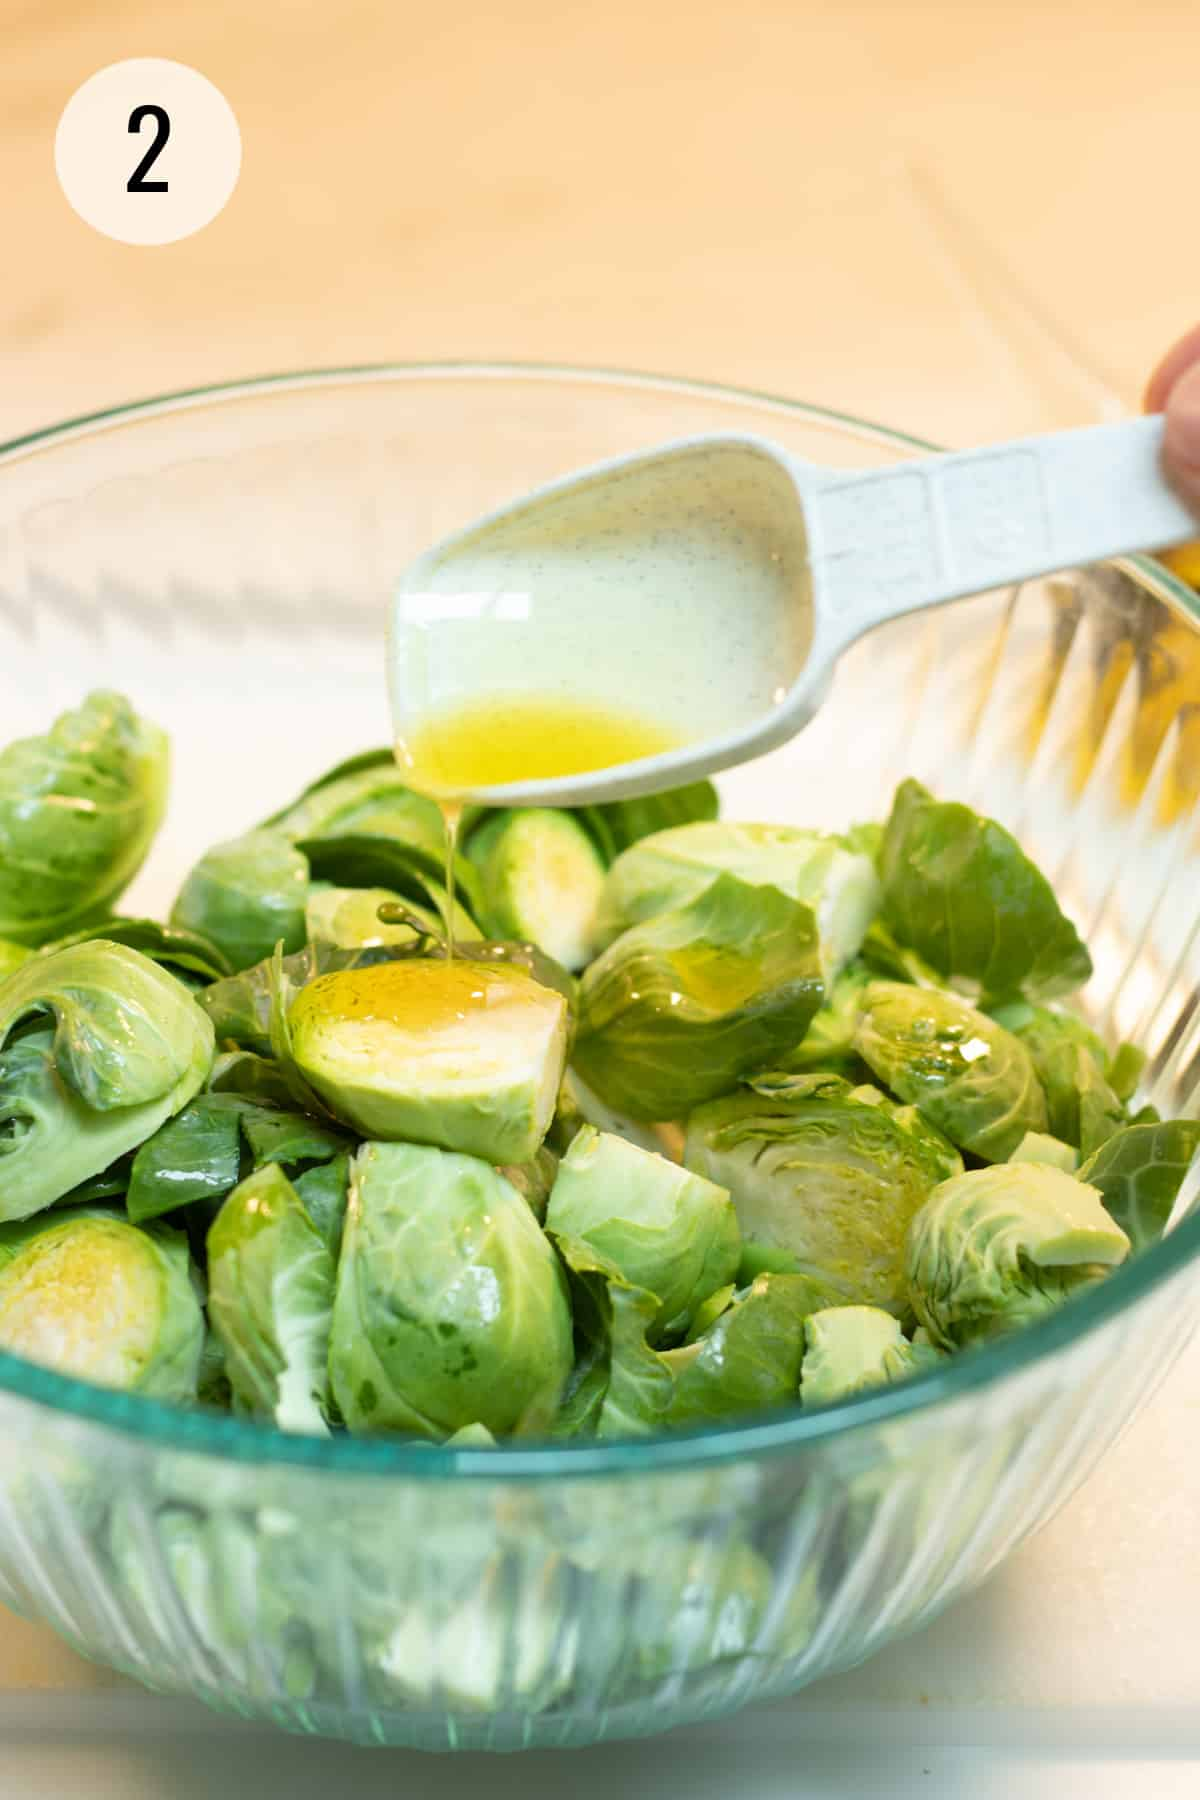 White measuring spoon drizzling olive oil in glass bowl full of cut Brussels sprouts.